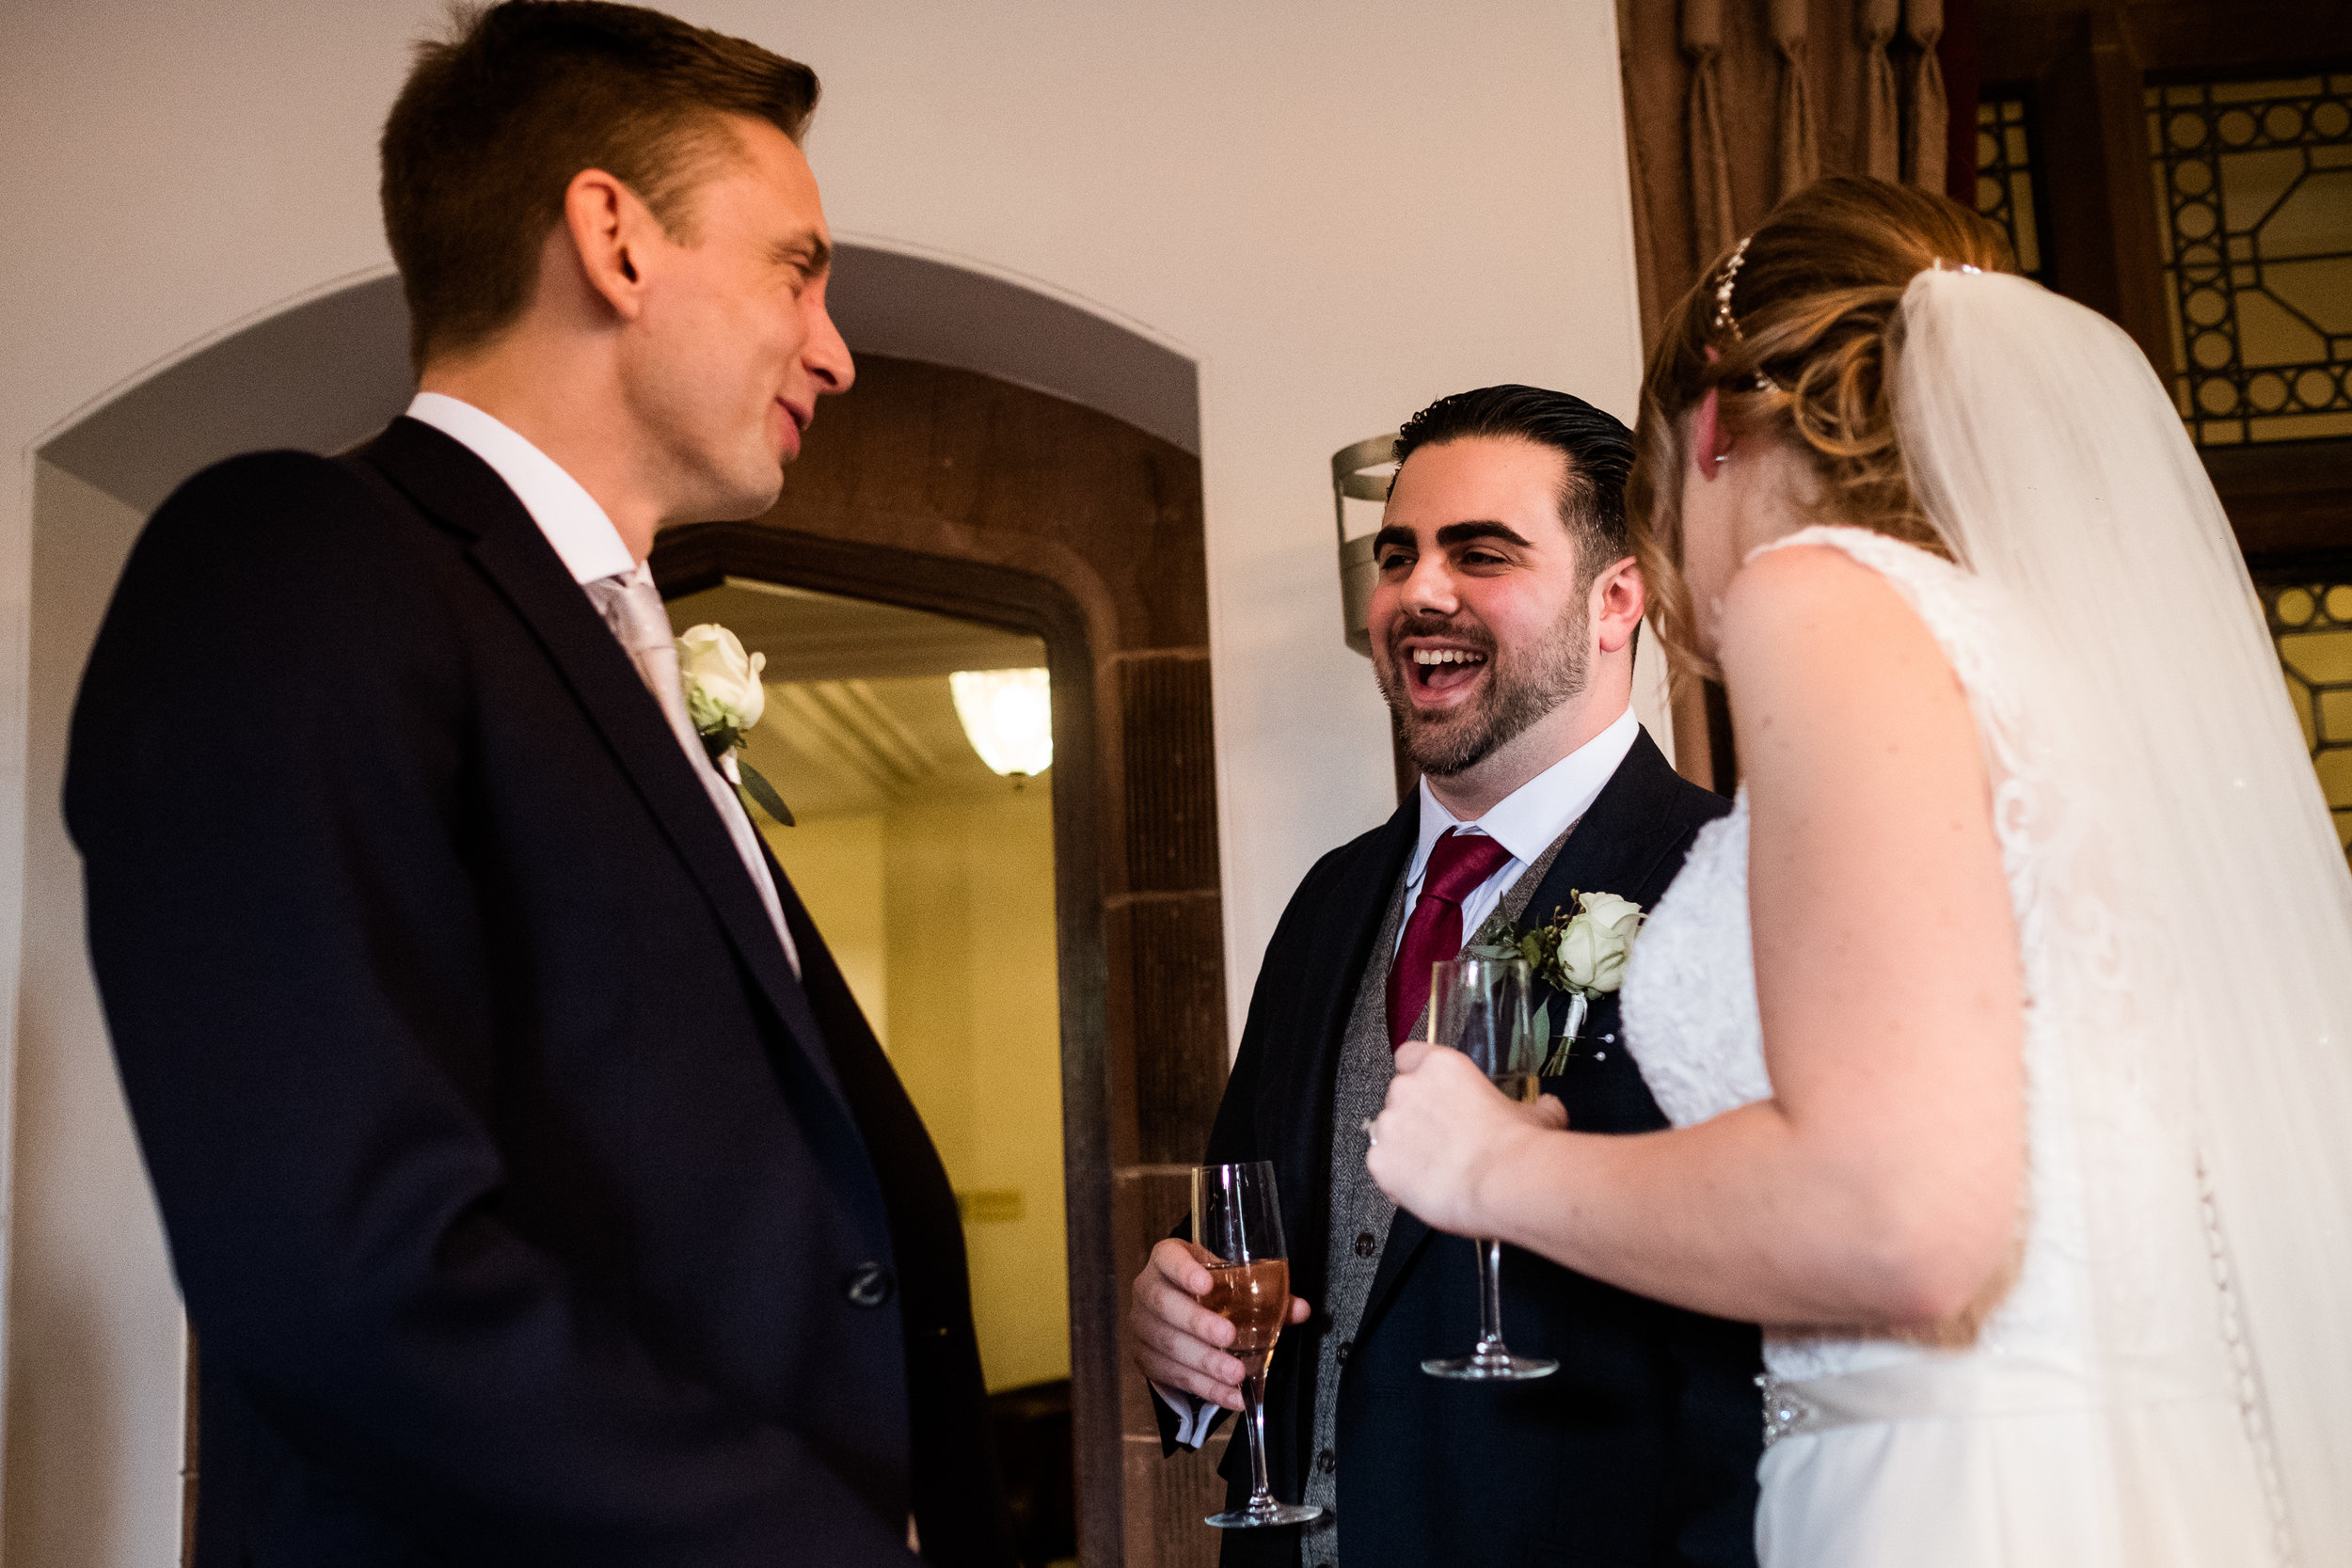 Birmingham Documentary Wedding Photography at New Hall, Sutton Coldfield Turkish Red Candid Reportage - Jenny Harper-43.jpg